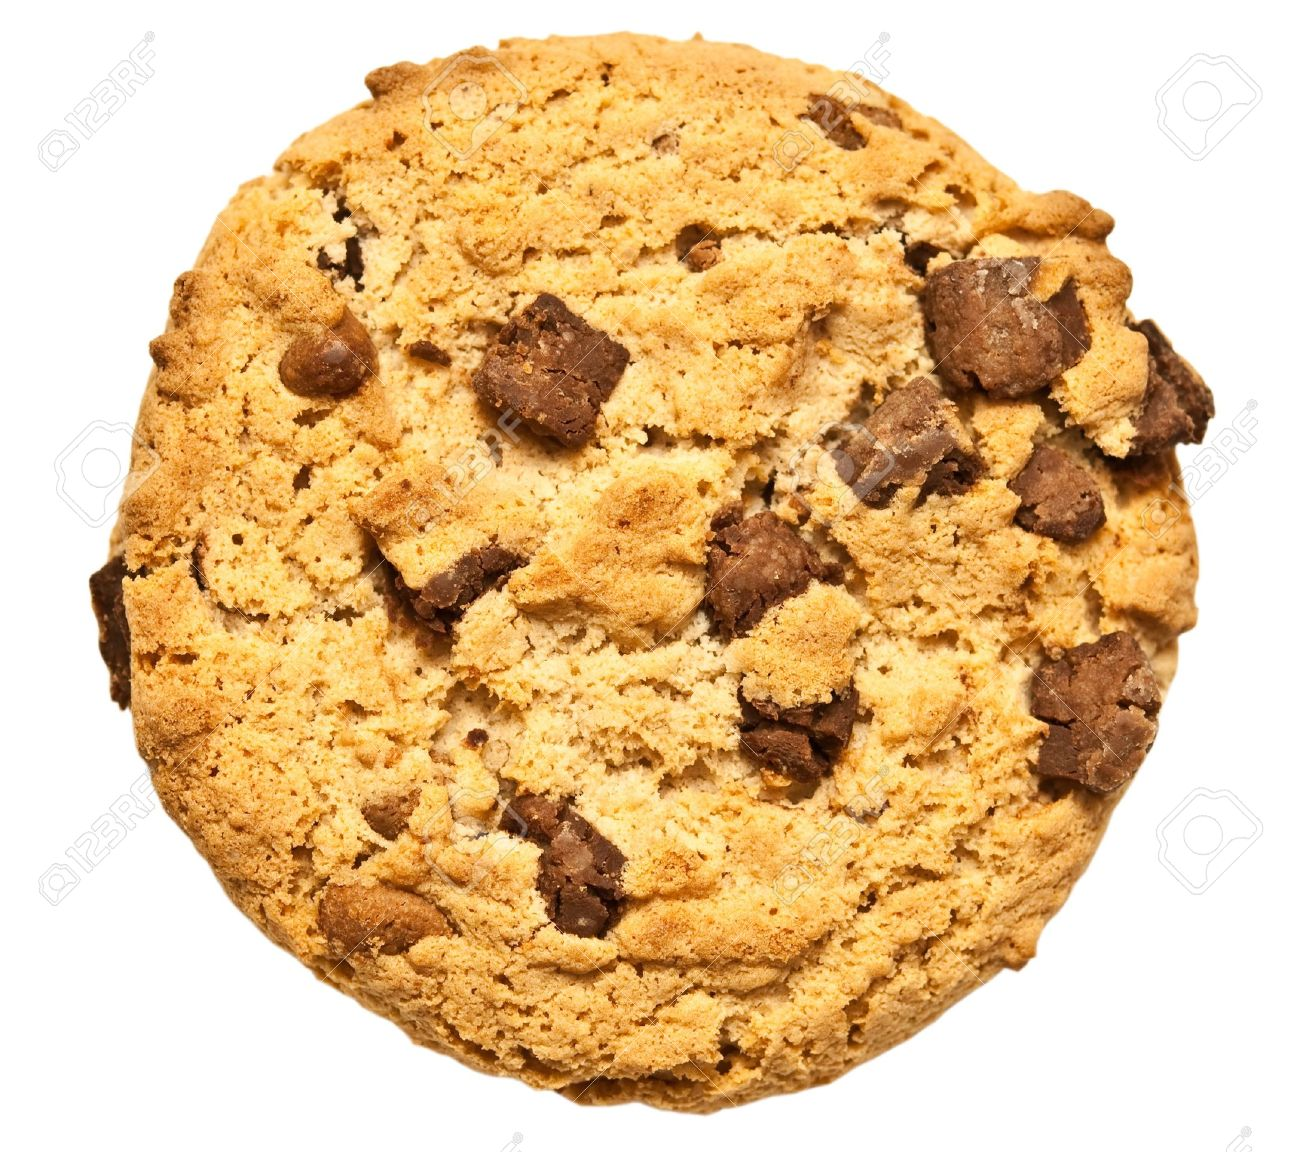 11992381-chocolate-chip-cookie-isolated-